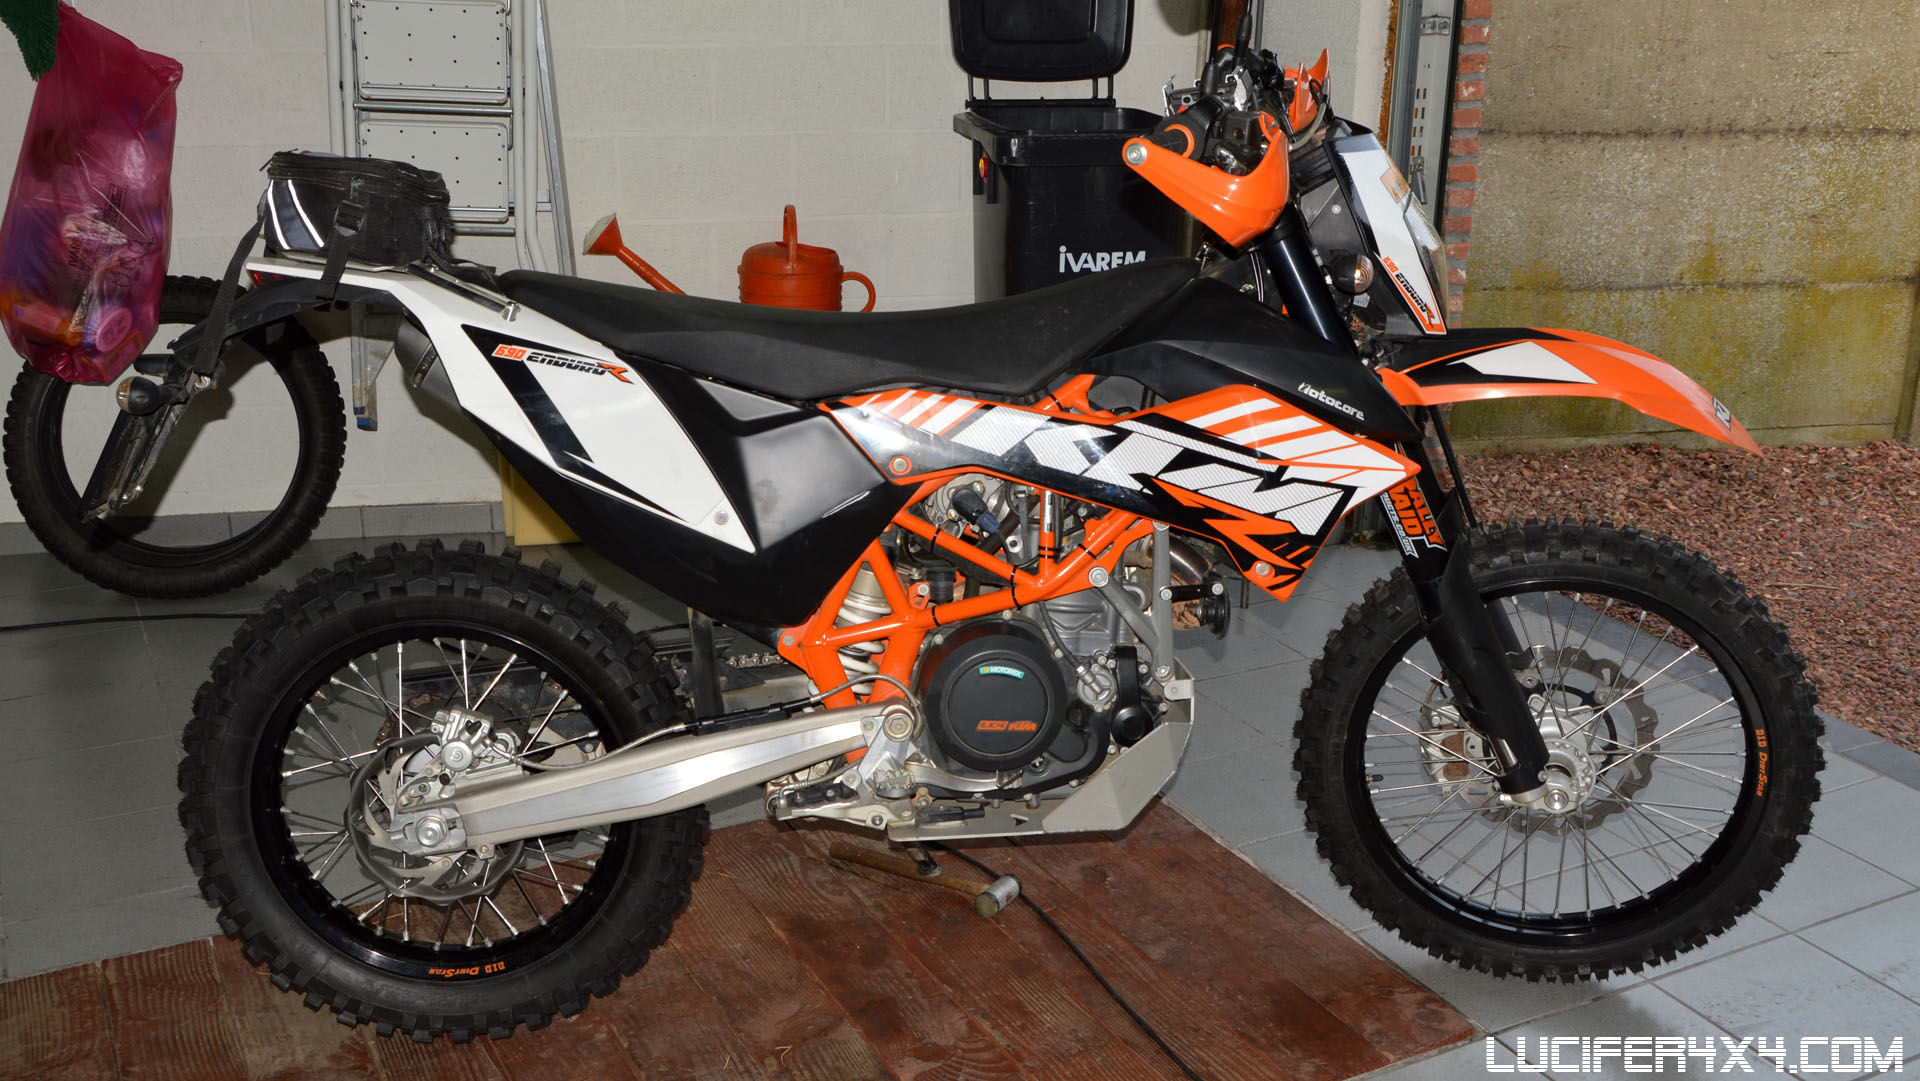 New shoes for the KTM 690 Enduro R